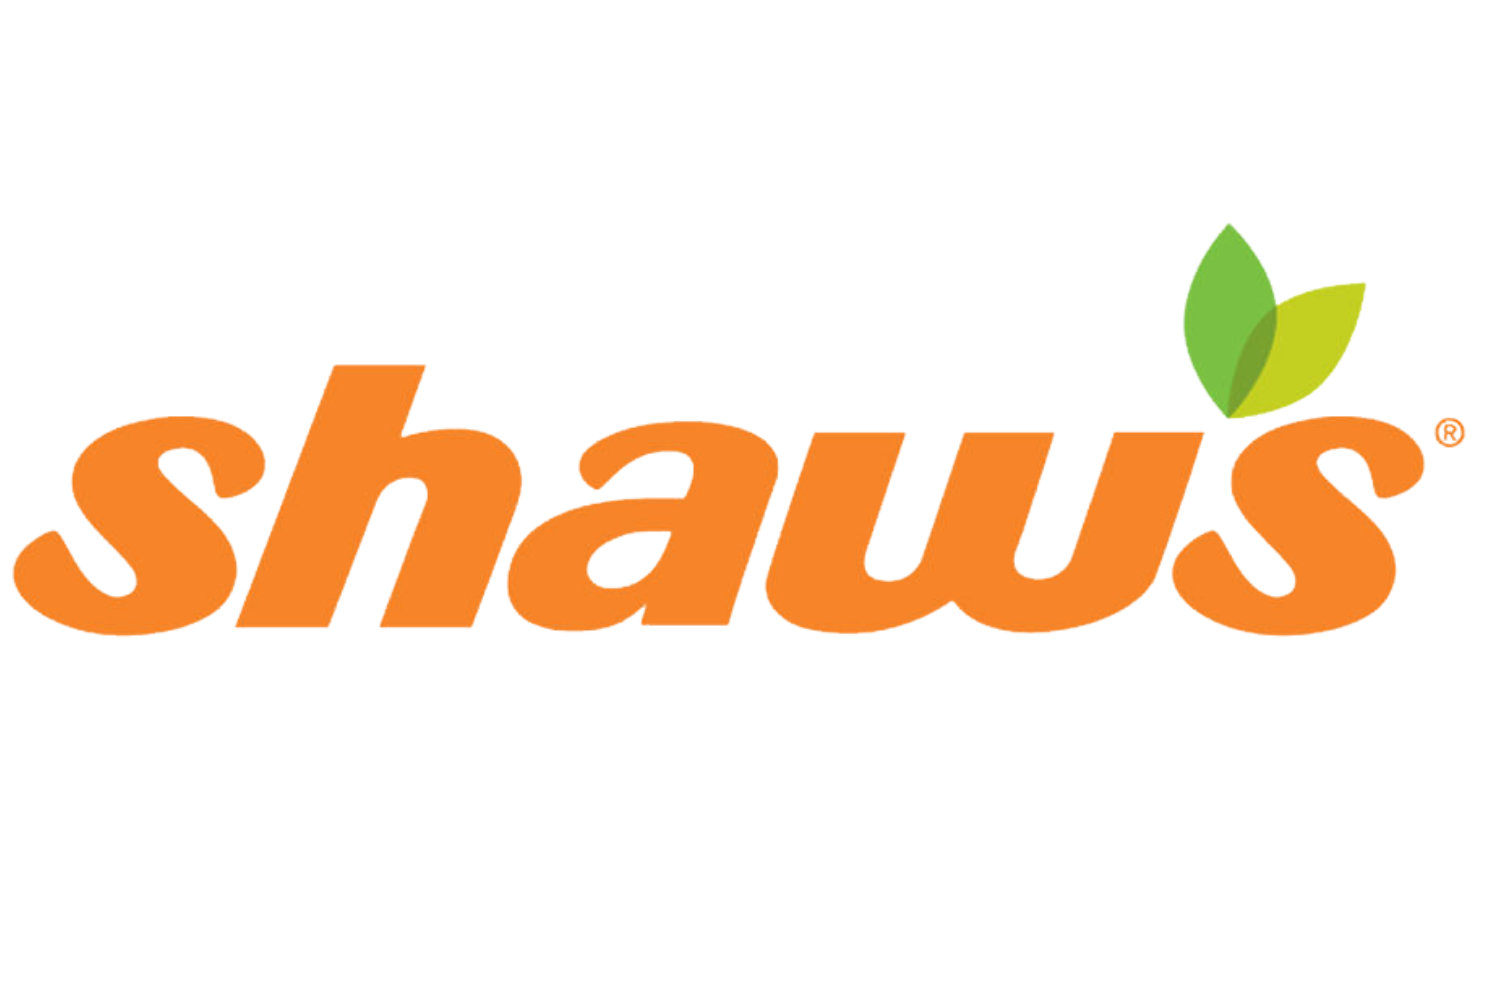 Shaws_logo.jpg